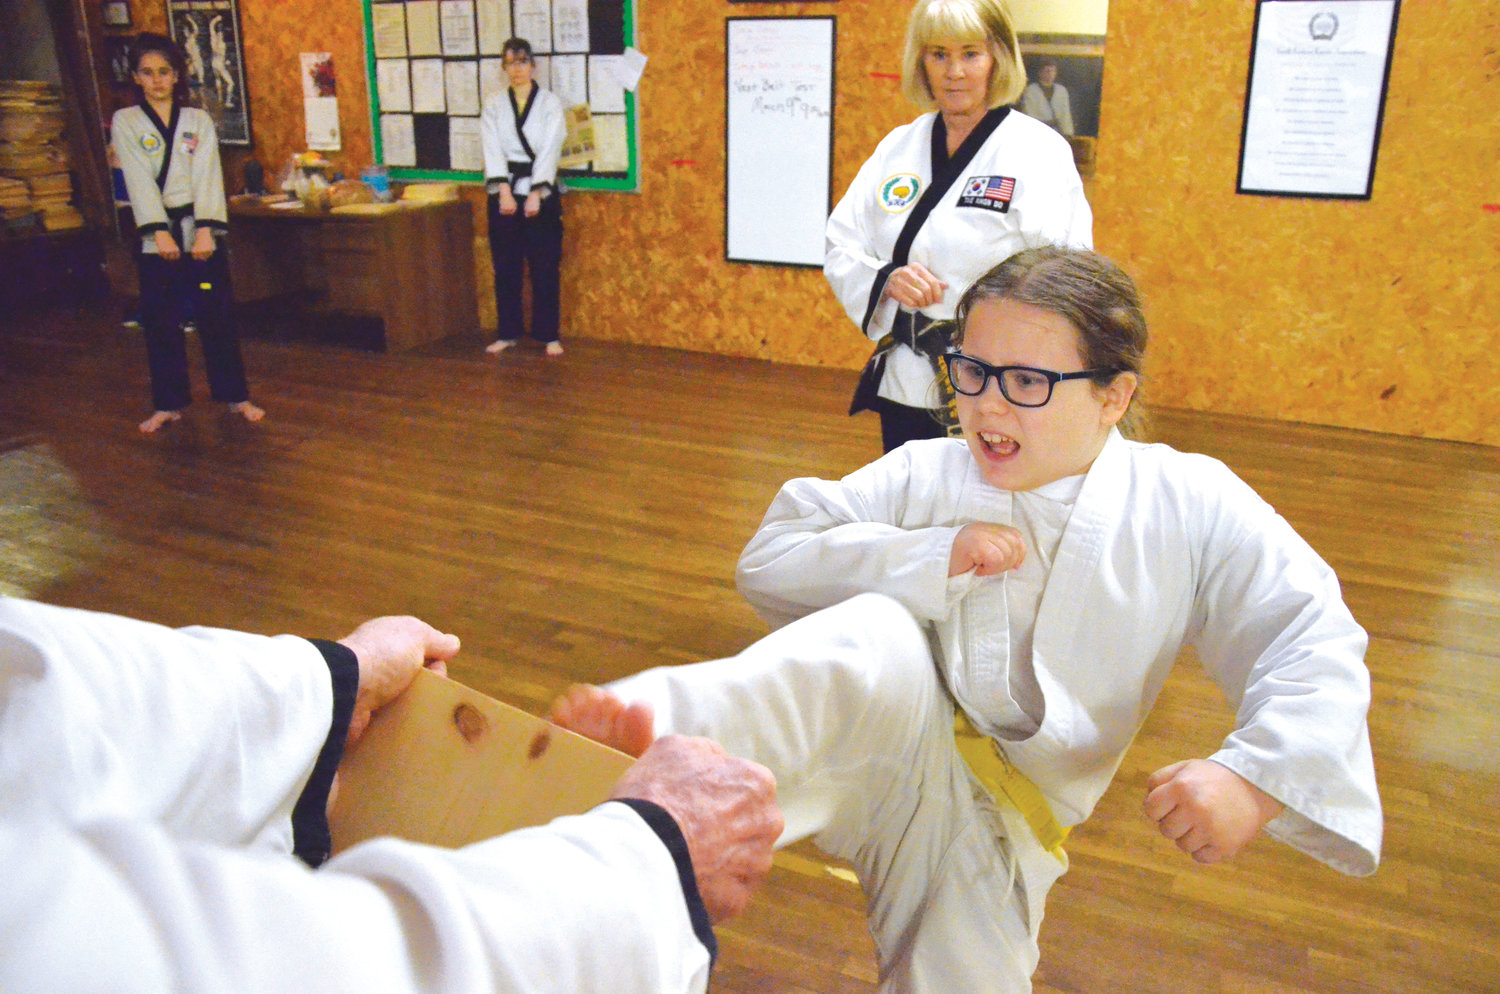 She's only 9 years old, but student Clara Hallberg is breaking half-inch thick boards just like the adults. After careful instruction by Master Peggy Jolly, shown watching, yellow-belt Hallberg kicked the board in two.